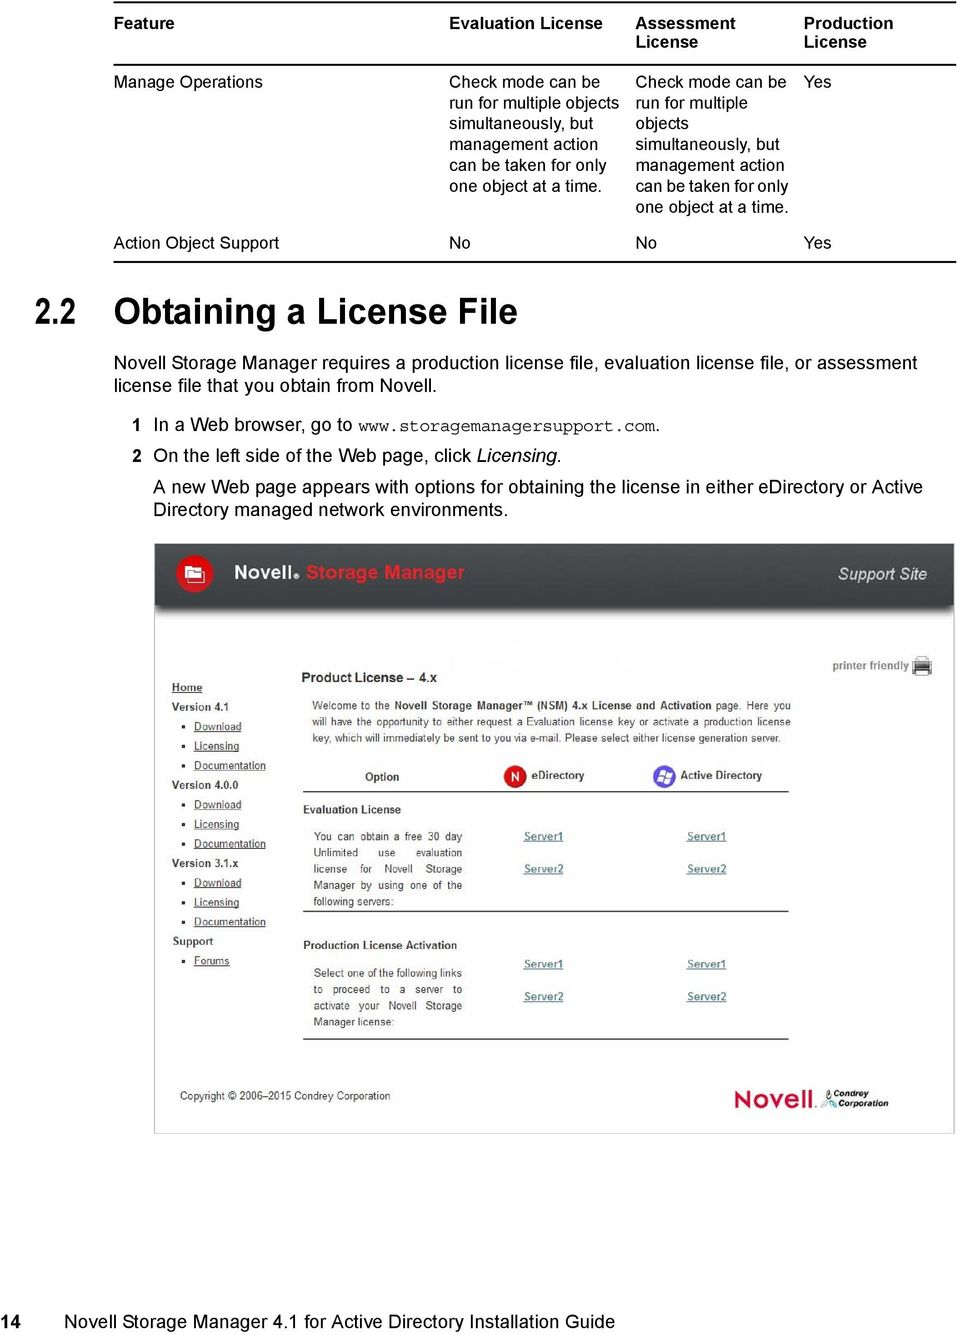 2 Obtaining a License File Novell Storage Manager requires a production license file, evaluation license file, or assessment license file that you obtain from Novell. 1 In a Web browser, go to www.